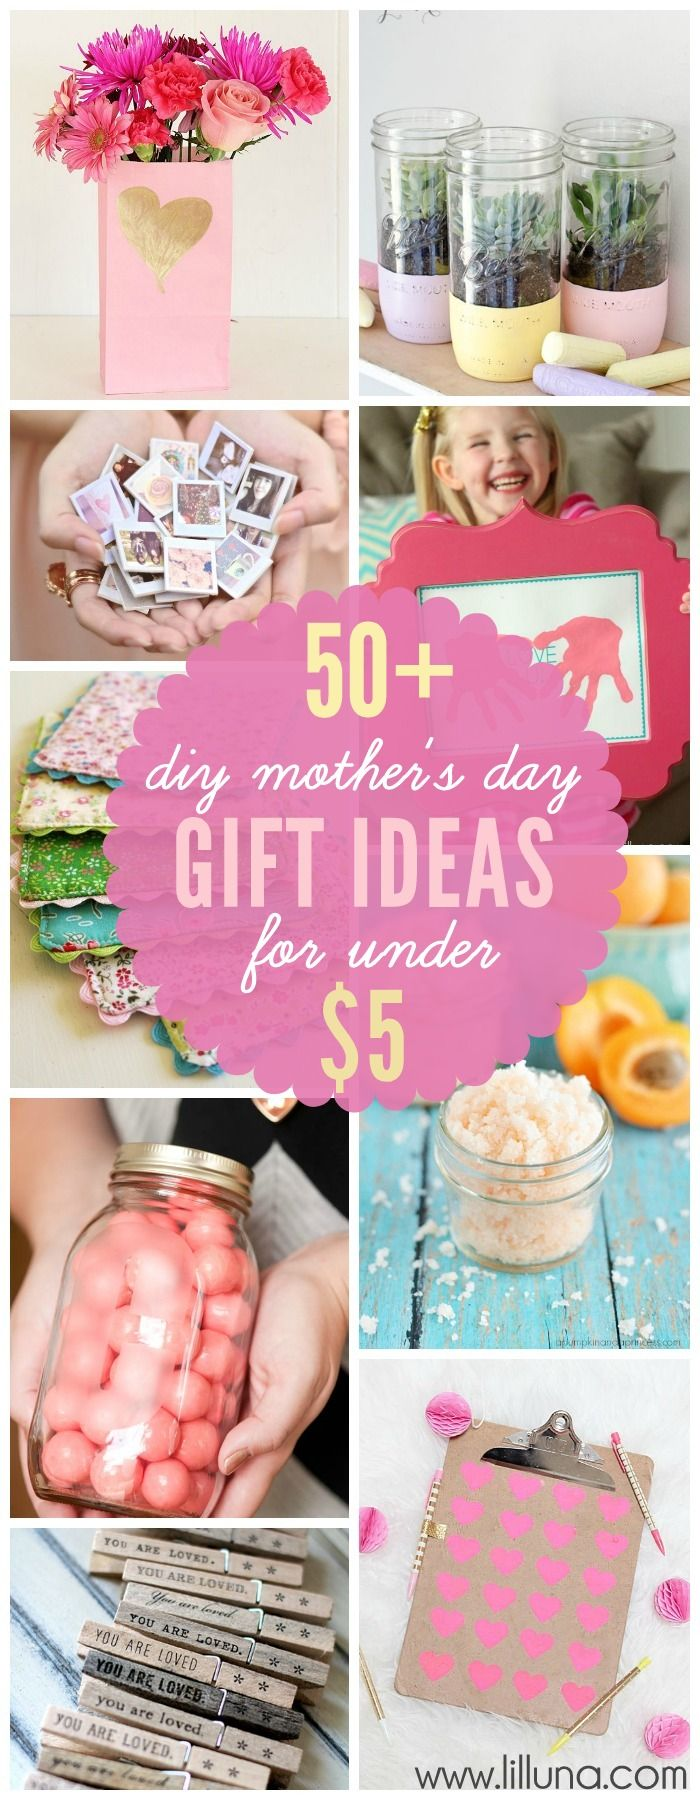 Mothers day ideas on pinterest mothers day crafts for Mother s day gift ideas for new moms